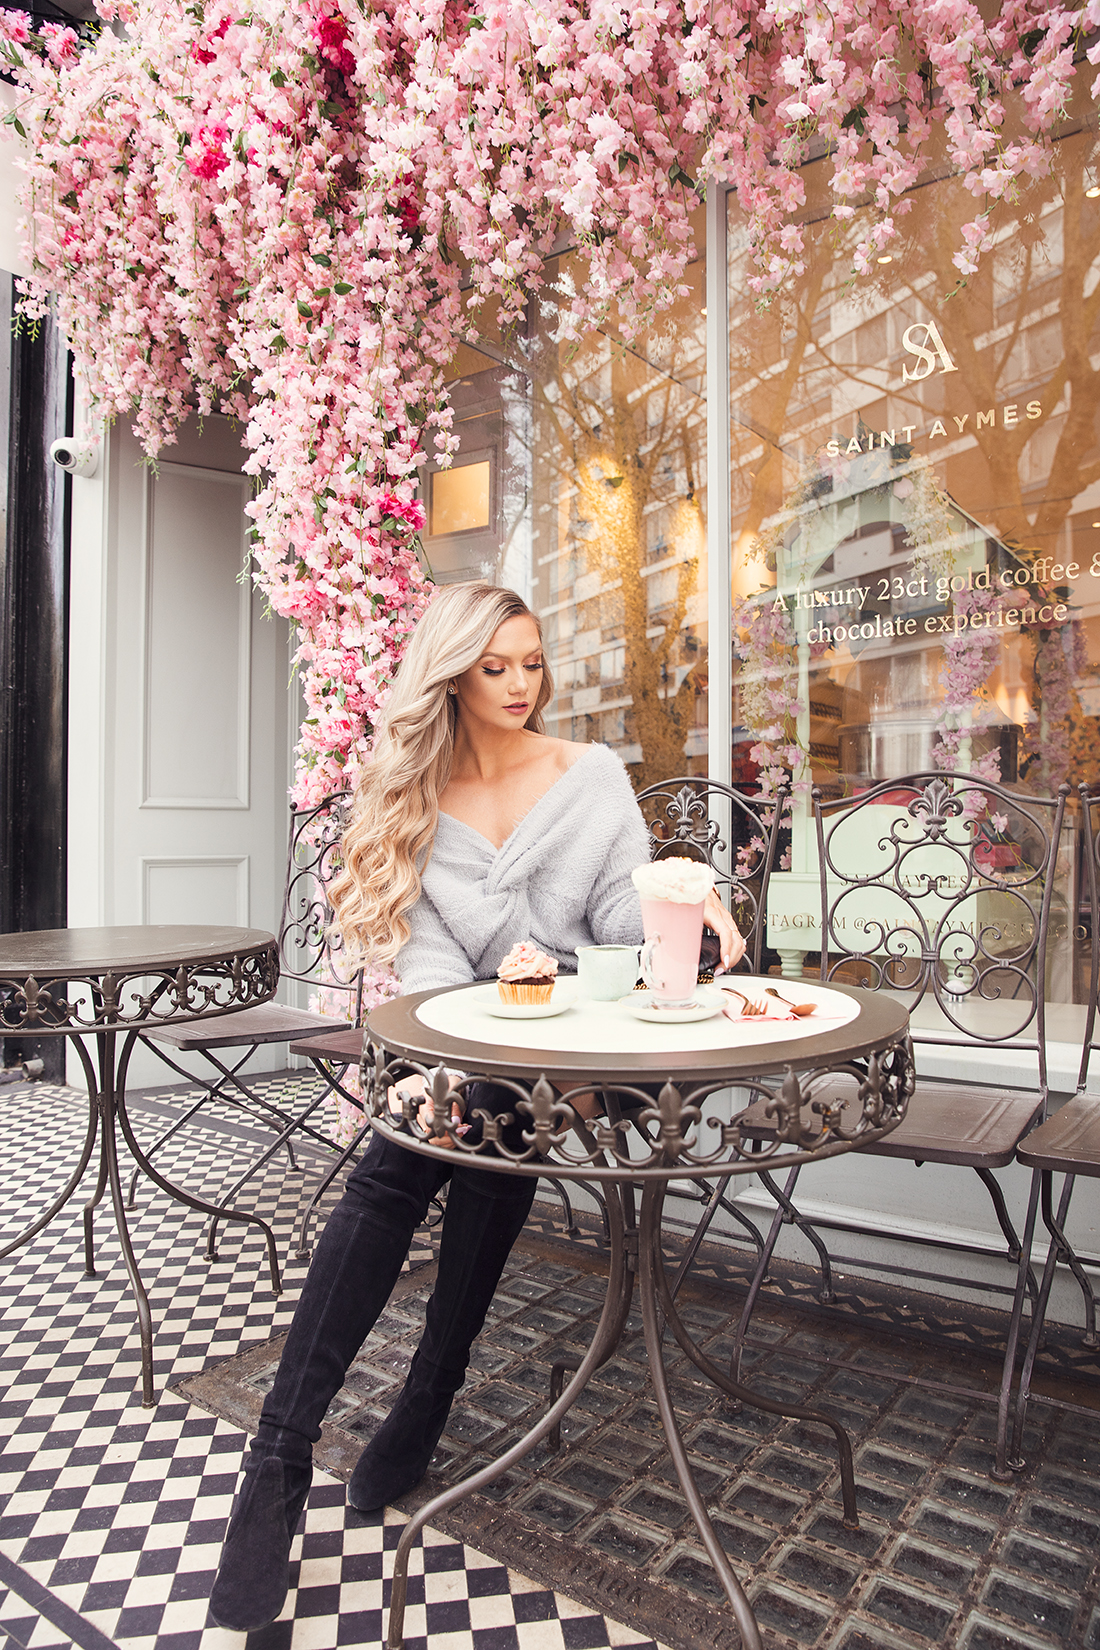 fashion blogger Stephanie Danielle in front of Saint Aymes cafe by London fashion photographer Ailera Stone